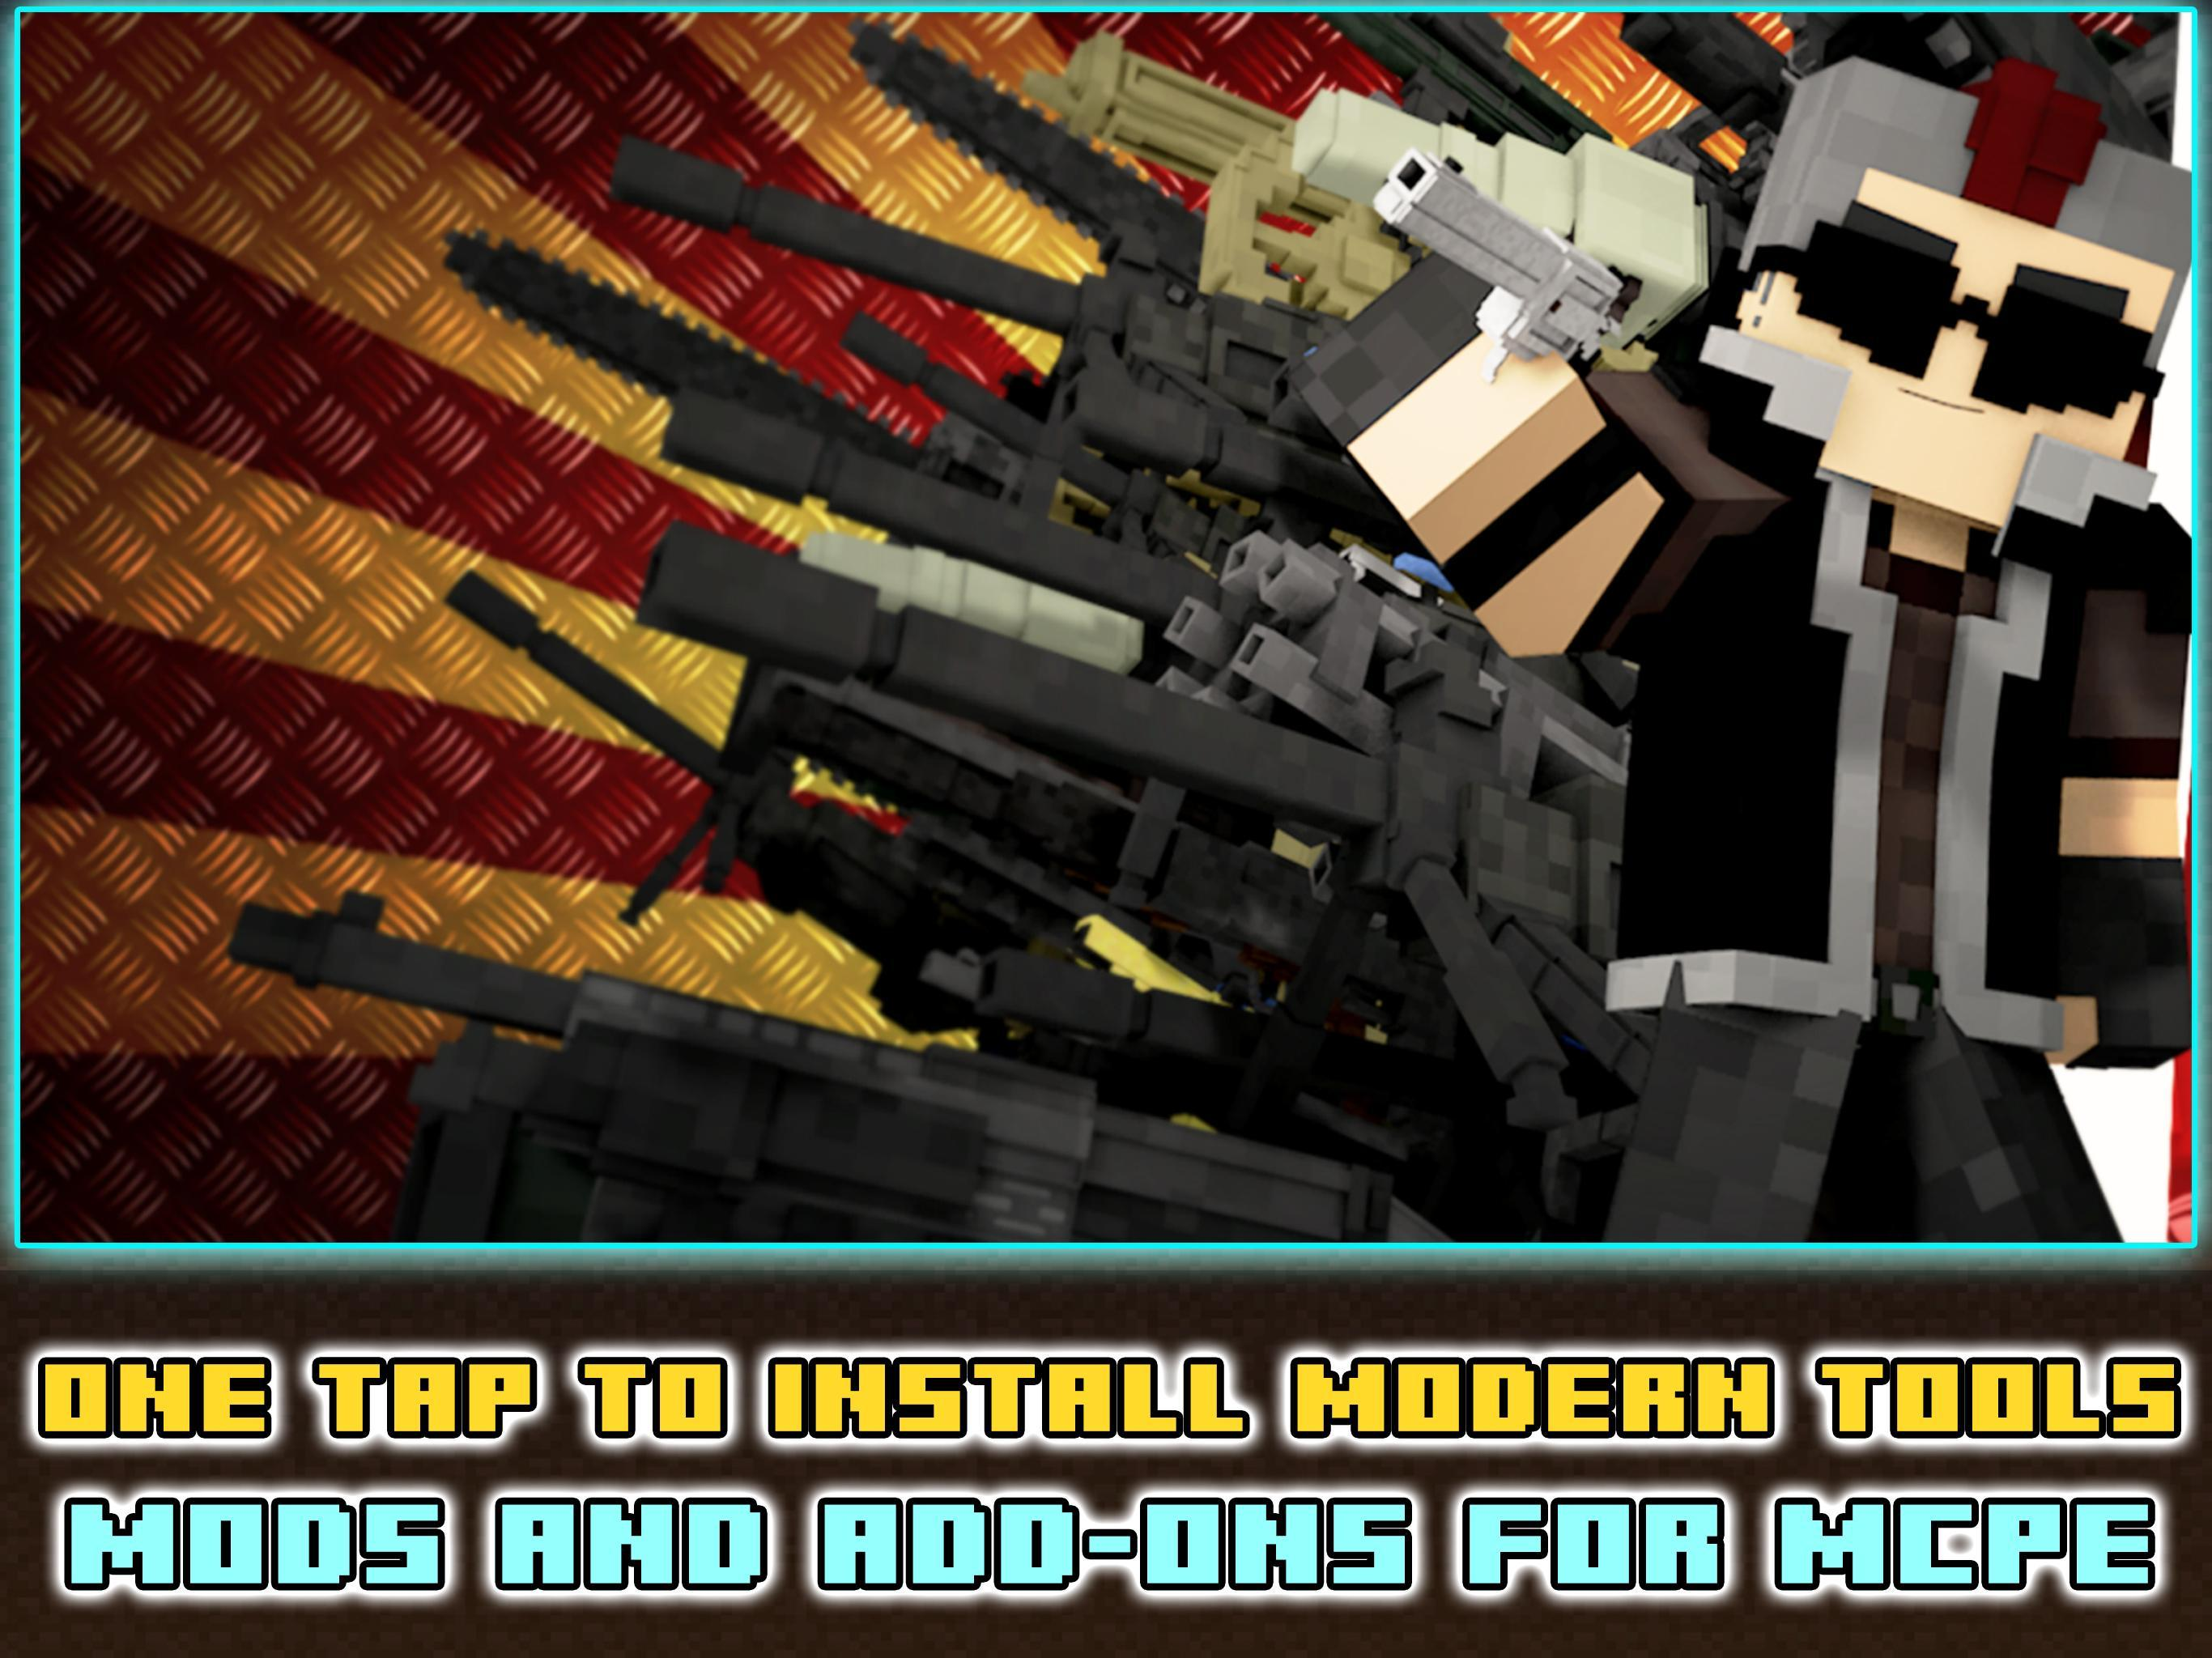 Modern tools mods and addons for Minecraft PE ™ for Android